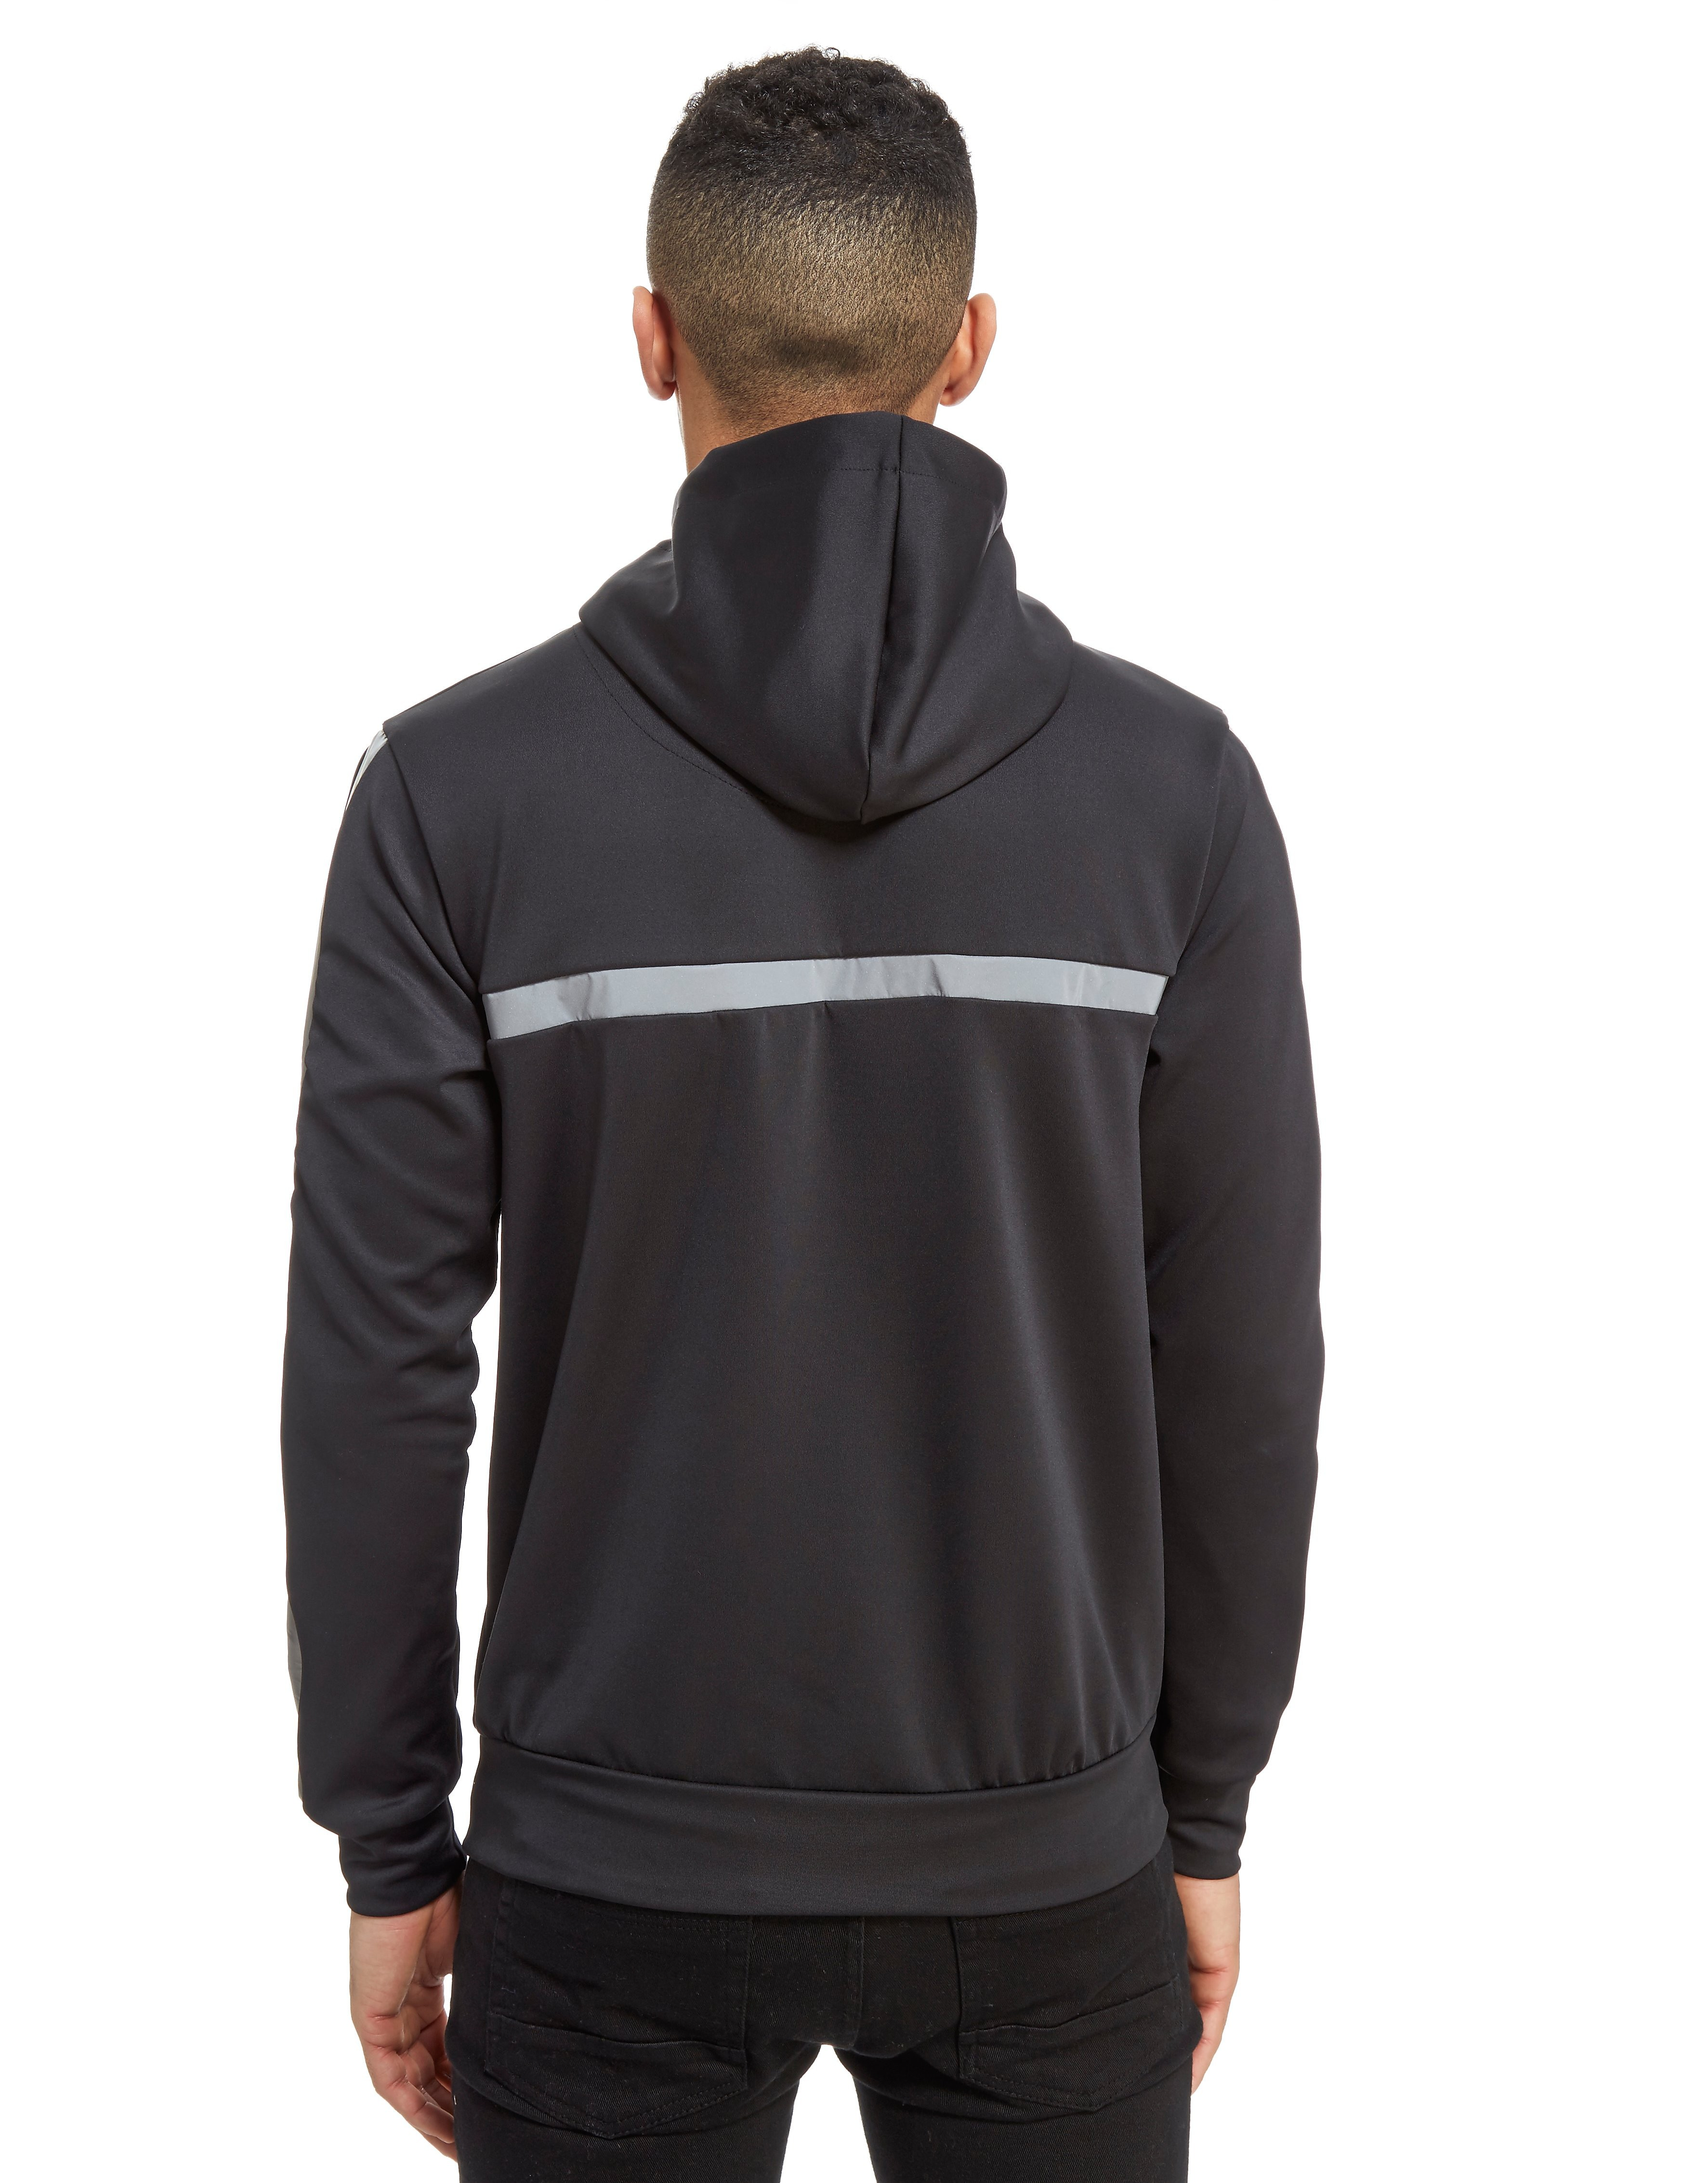 Supply & Demand Reflective Tracker Hoodie